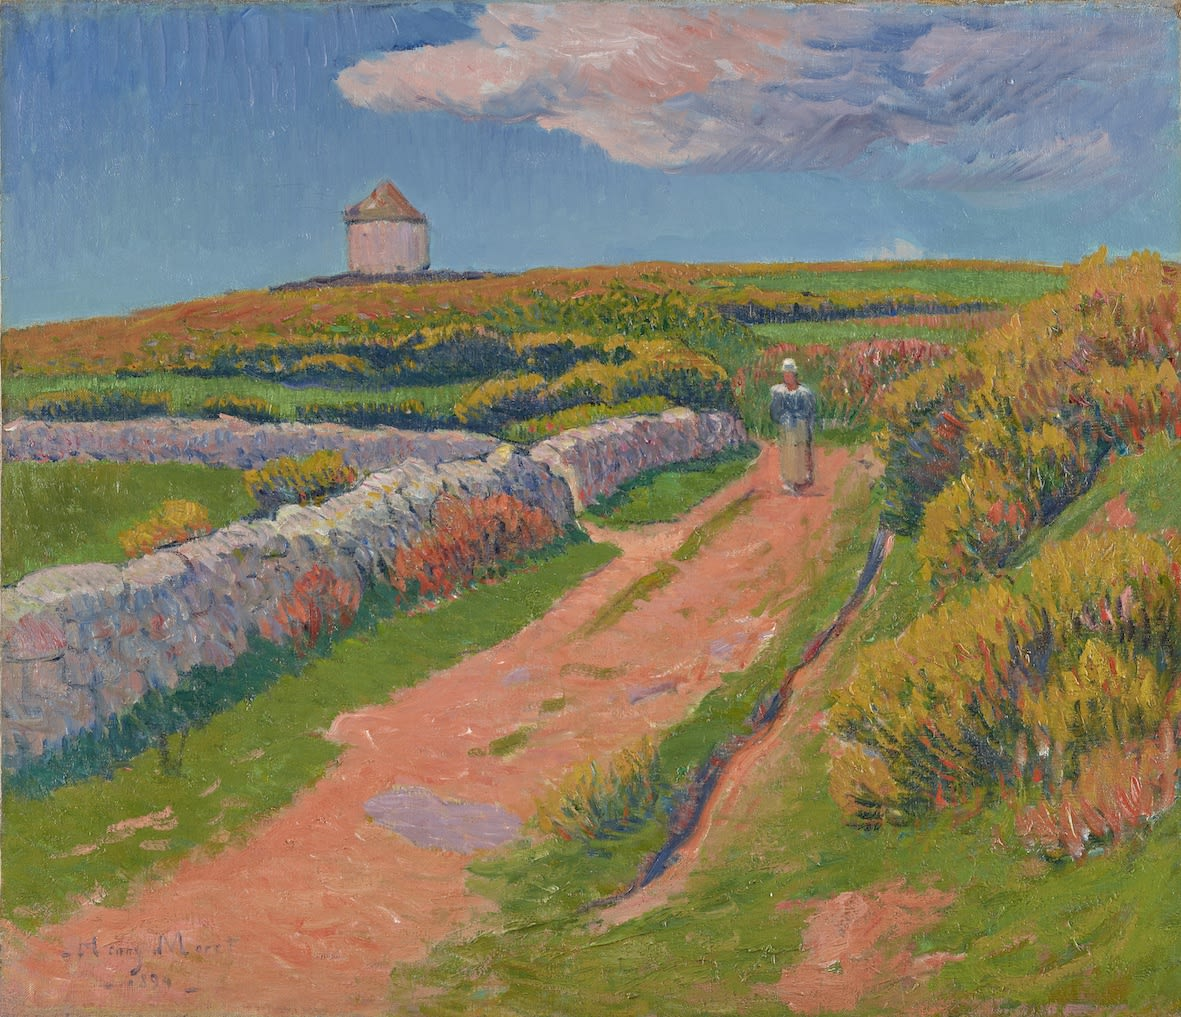 <span class=&#34;link fancybox-details-link&#34;><a href=&#34;/artists/69-henry-moret/works/9411-henry-moret-le-chemin-rose-1894/&#34;>View Detail Page</a></span><div class=&#34;artist&#34;><span class=&#34;artist&#34;><strong>Henry Moret</strong></span></div>